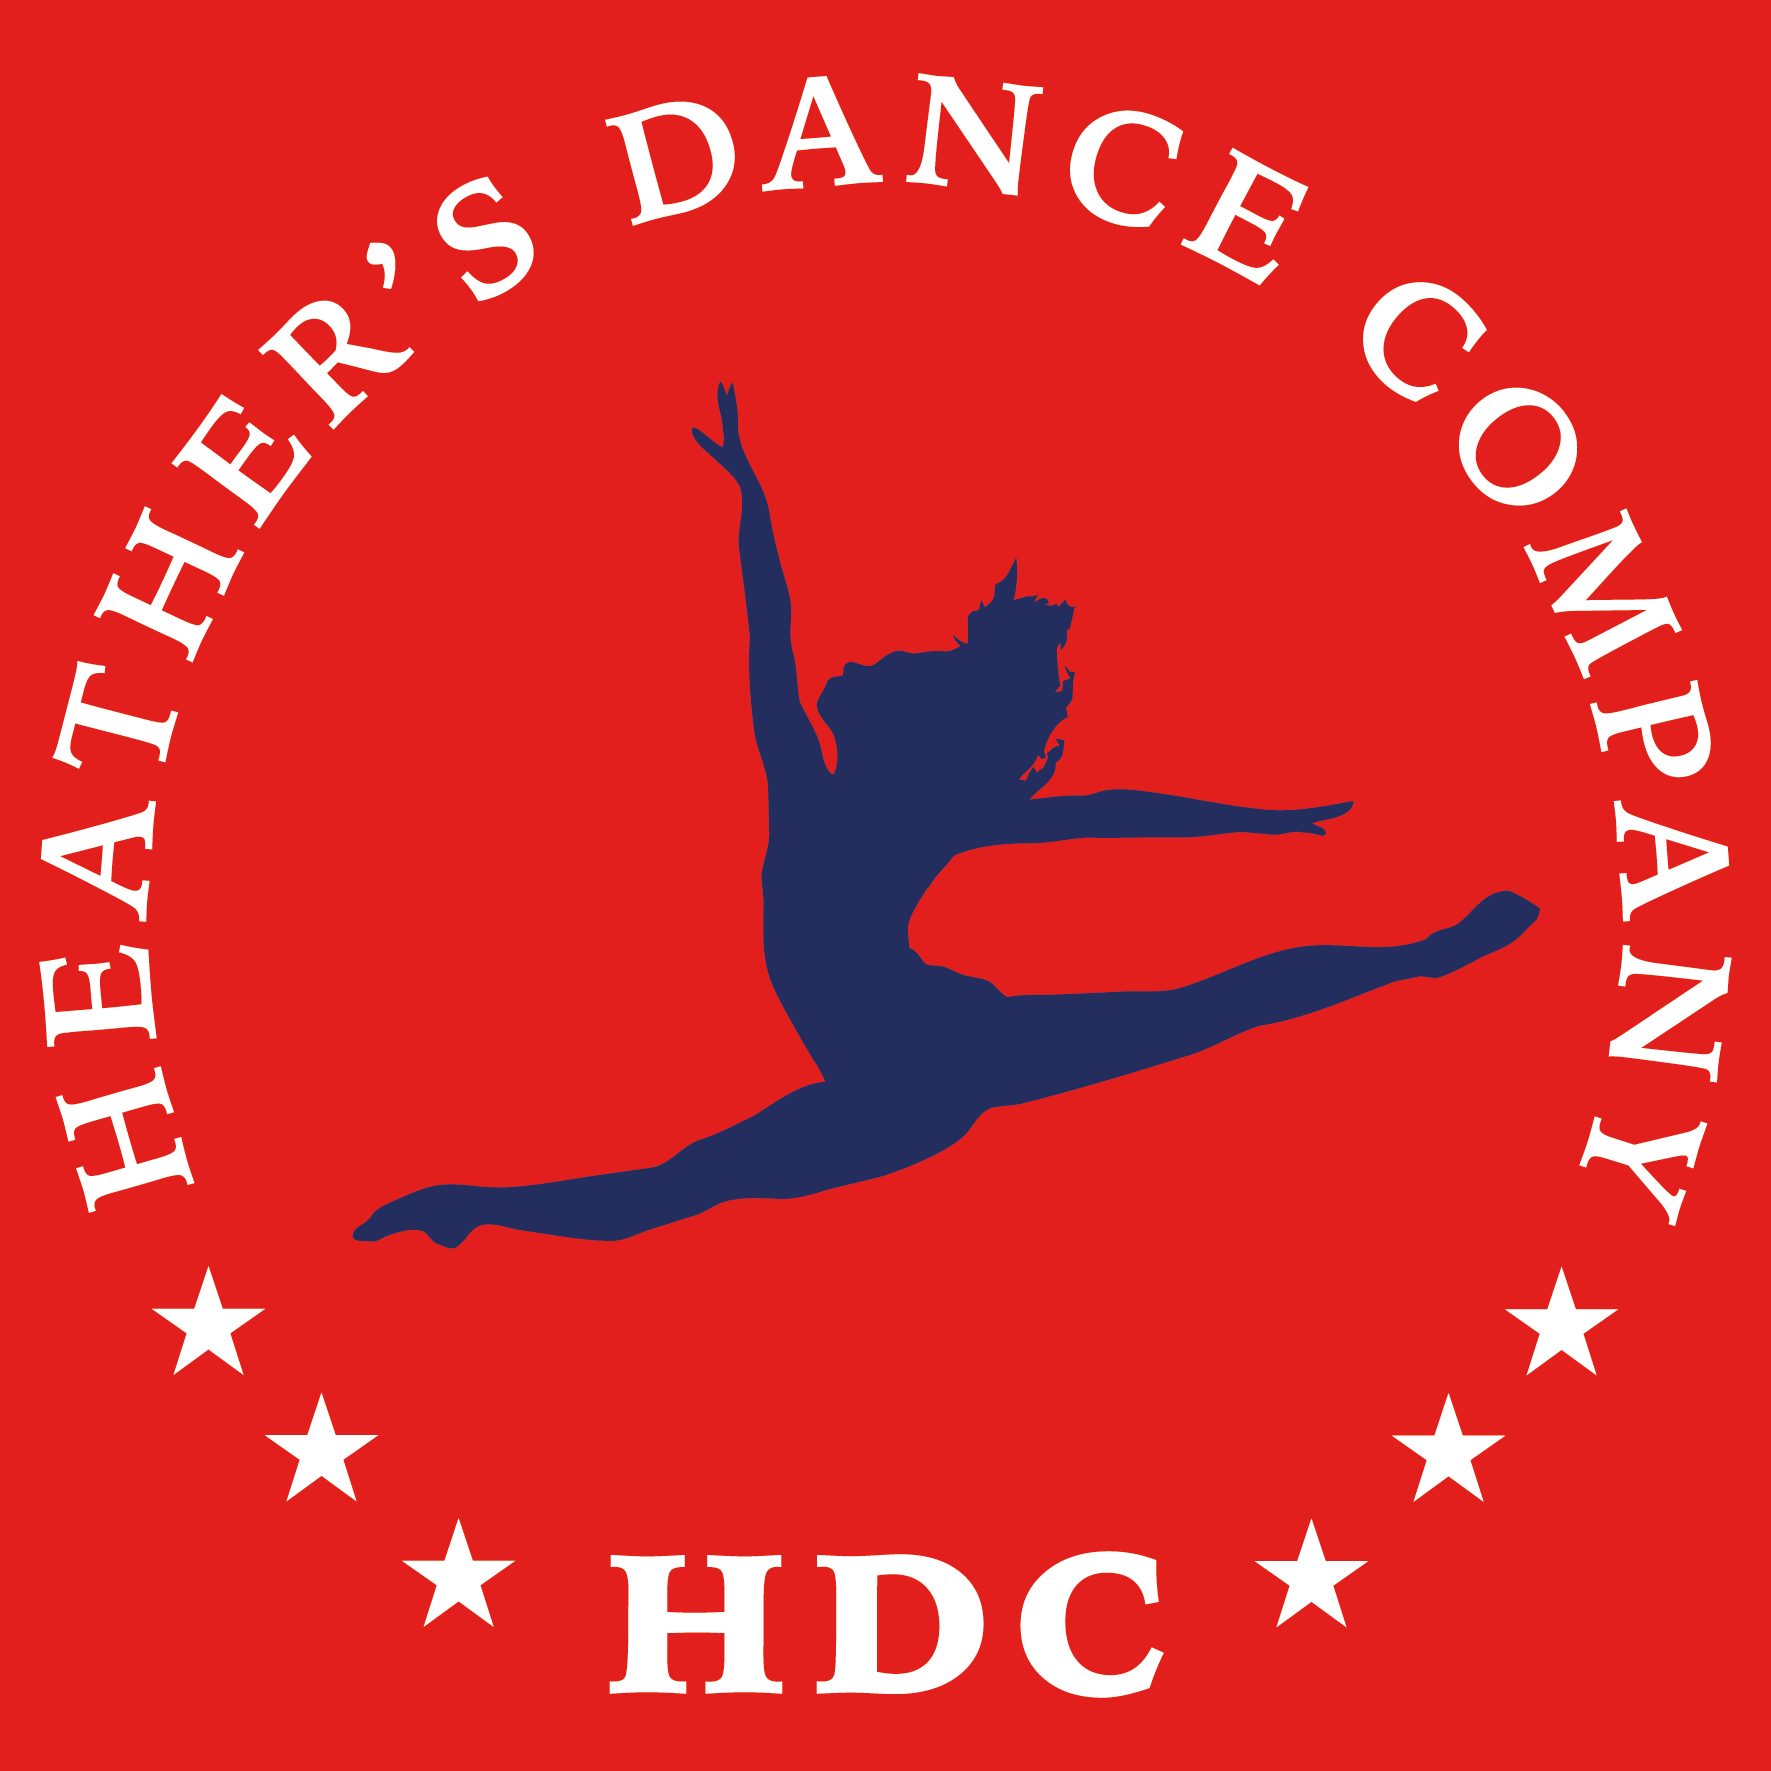 Heathers Dance company LOGO for use on red-01.png